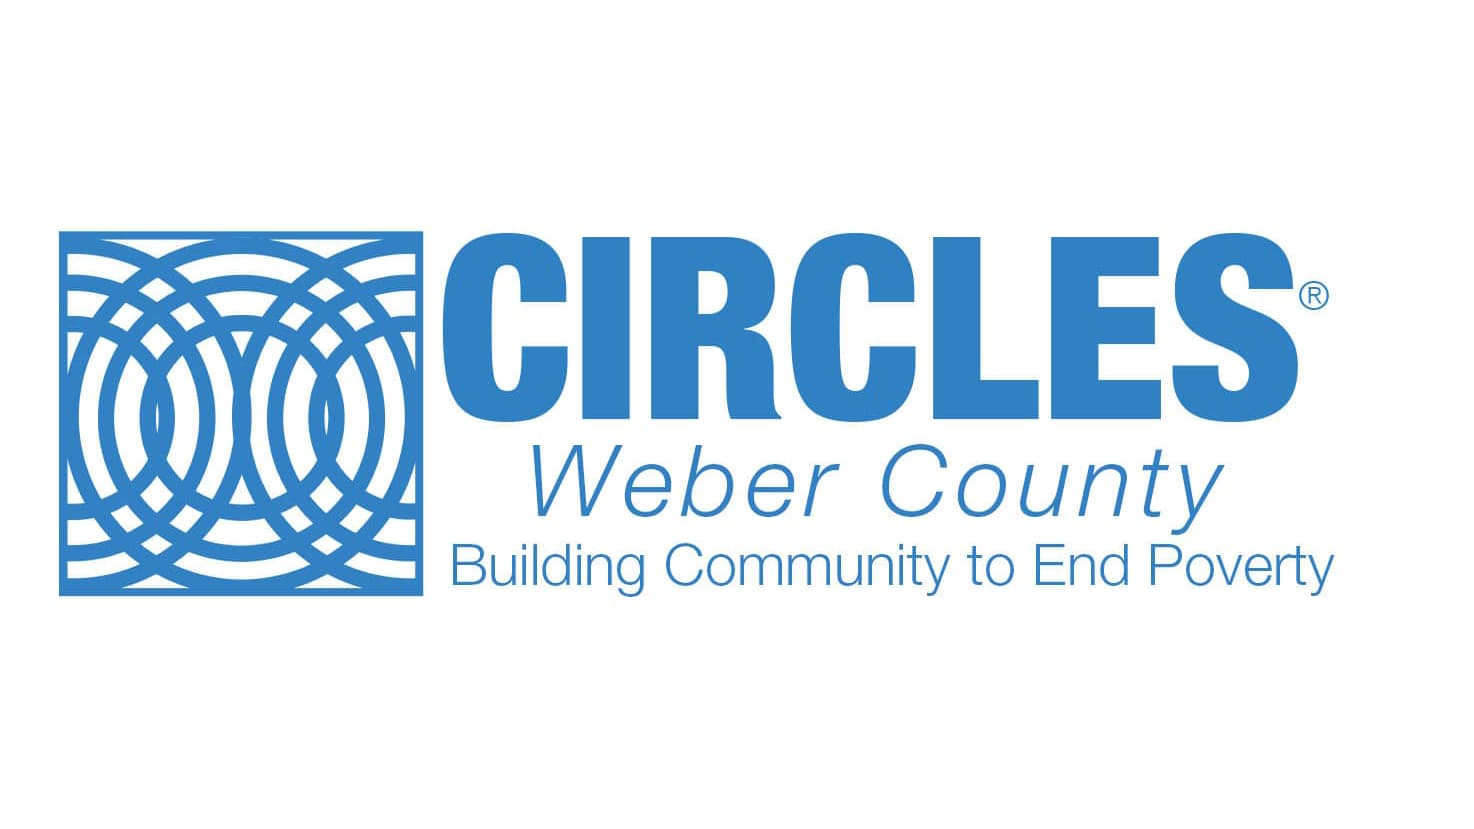 OWCAP's Circles Program in Weber County